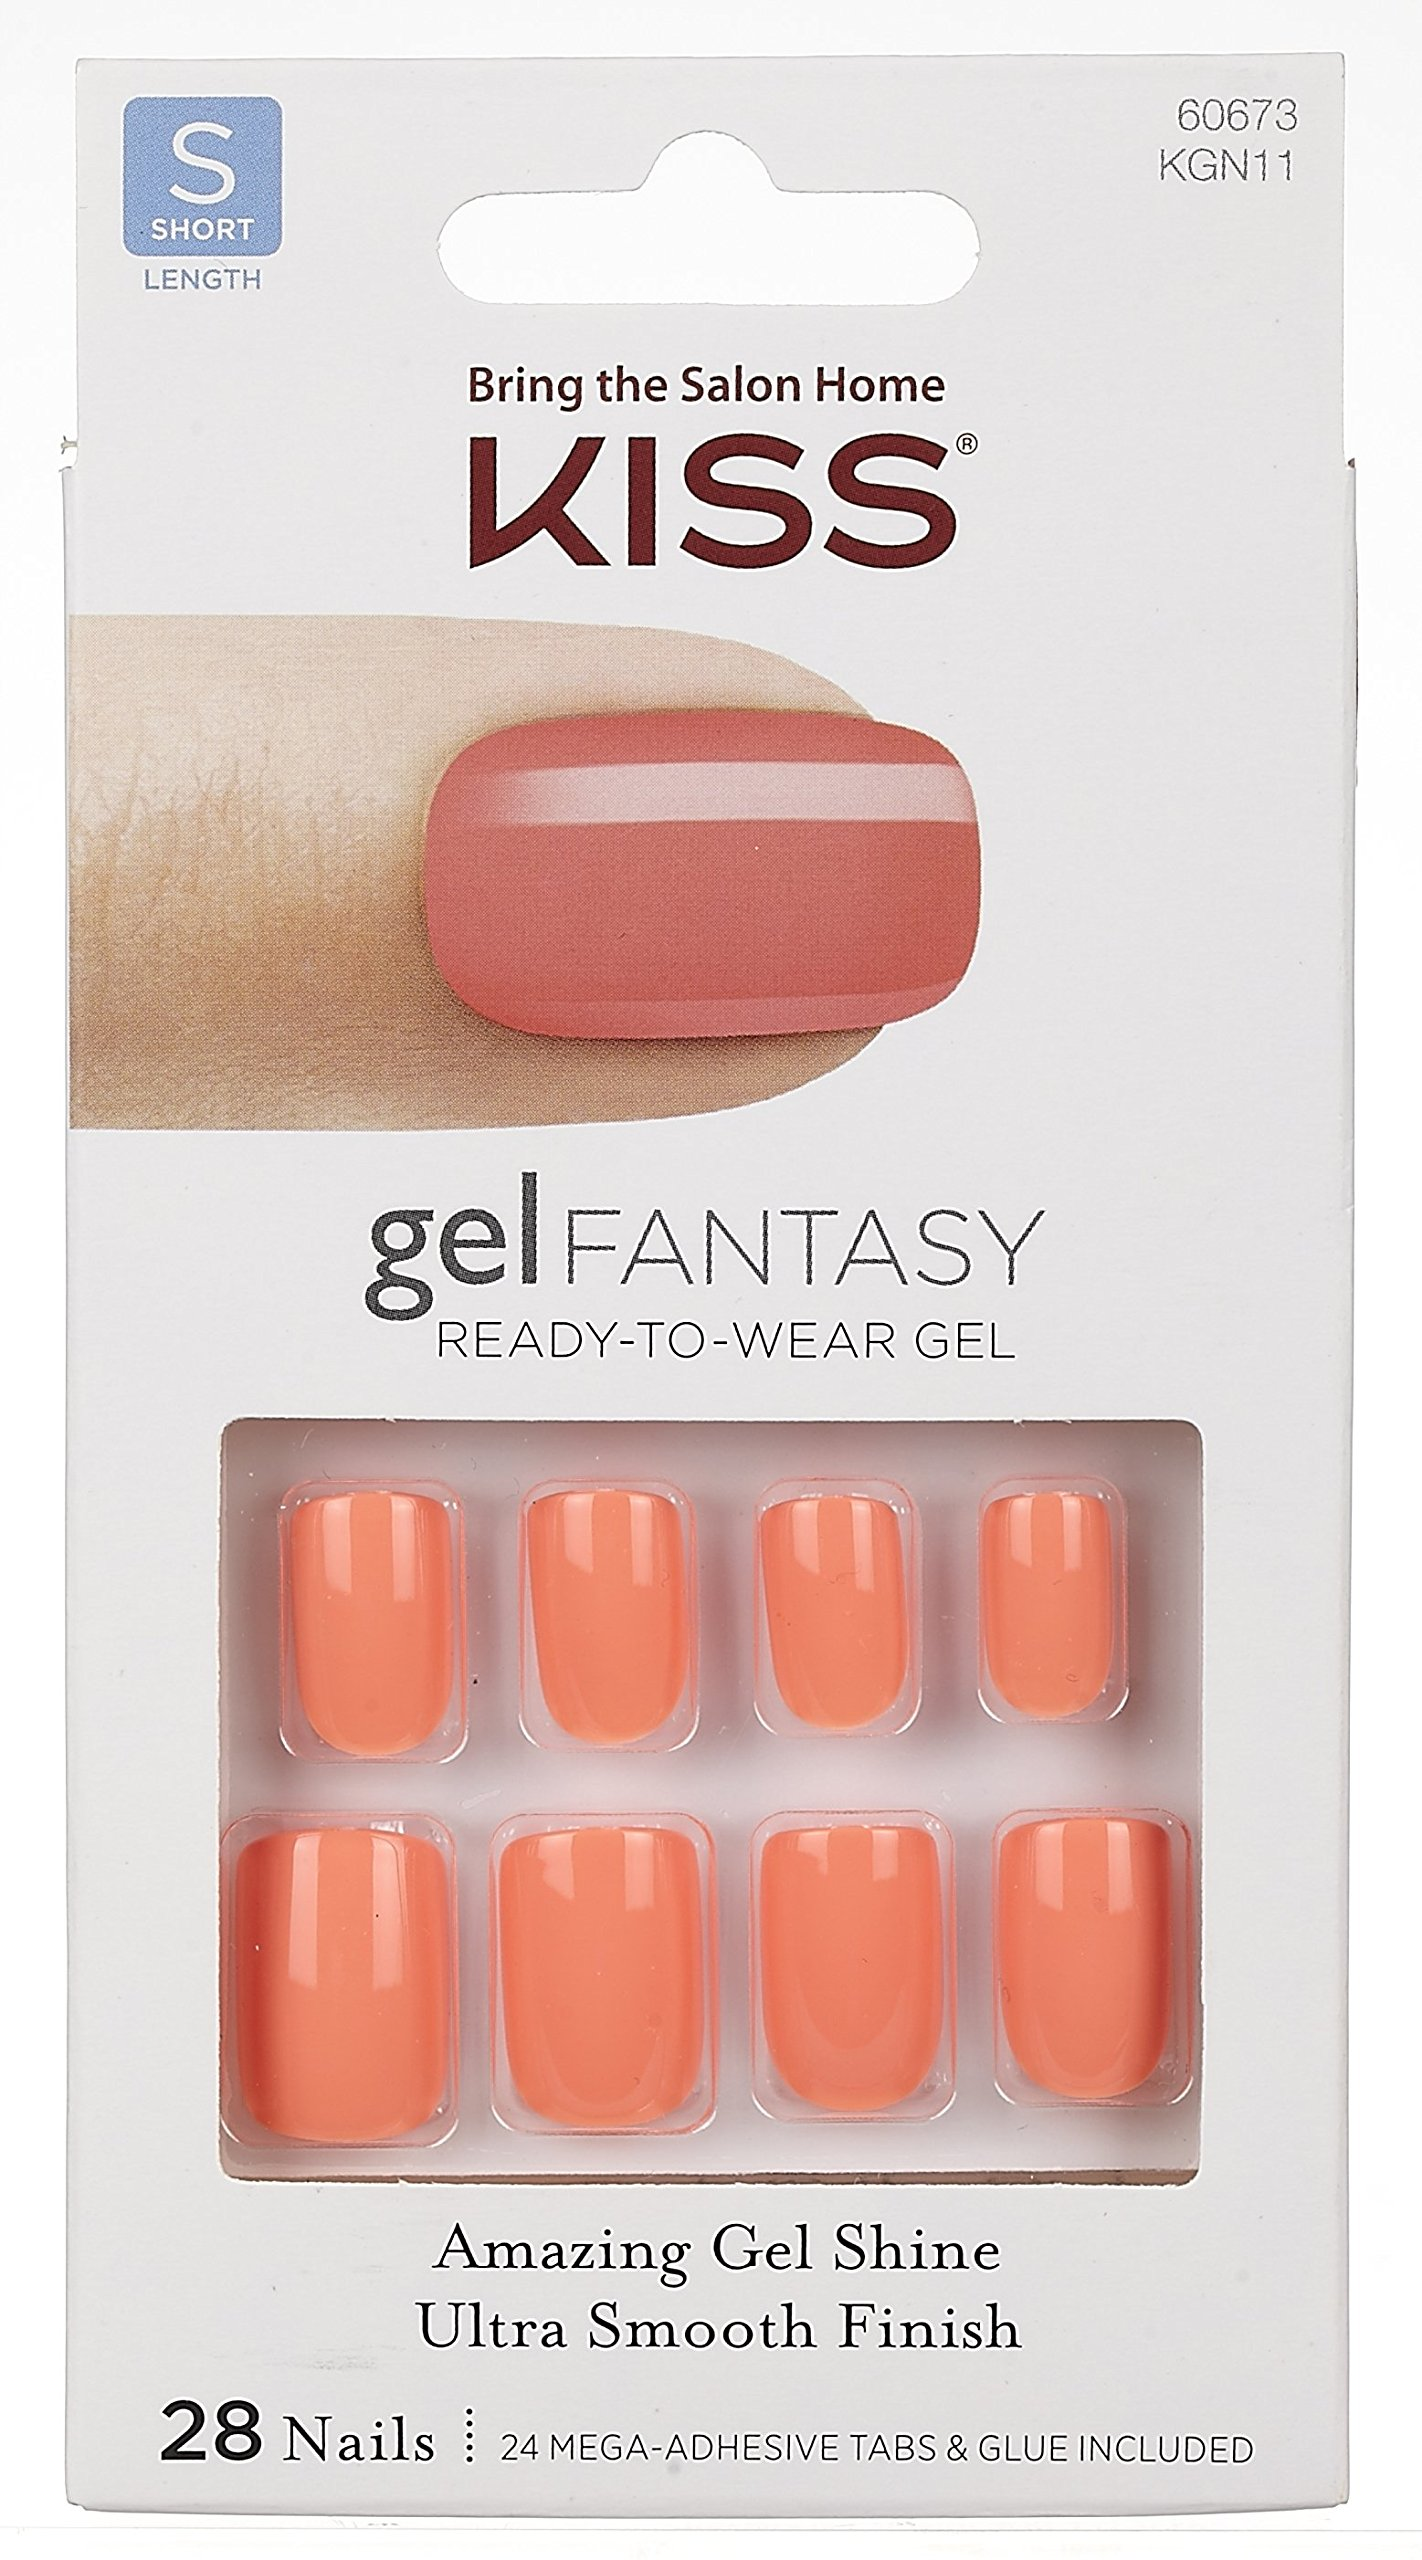 "**NEW** Kiss Nails GEL FANTASY ""KGN11"" (TIGHT FIT) Short Design Nails w/Adhesive Tabs & Glue"